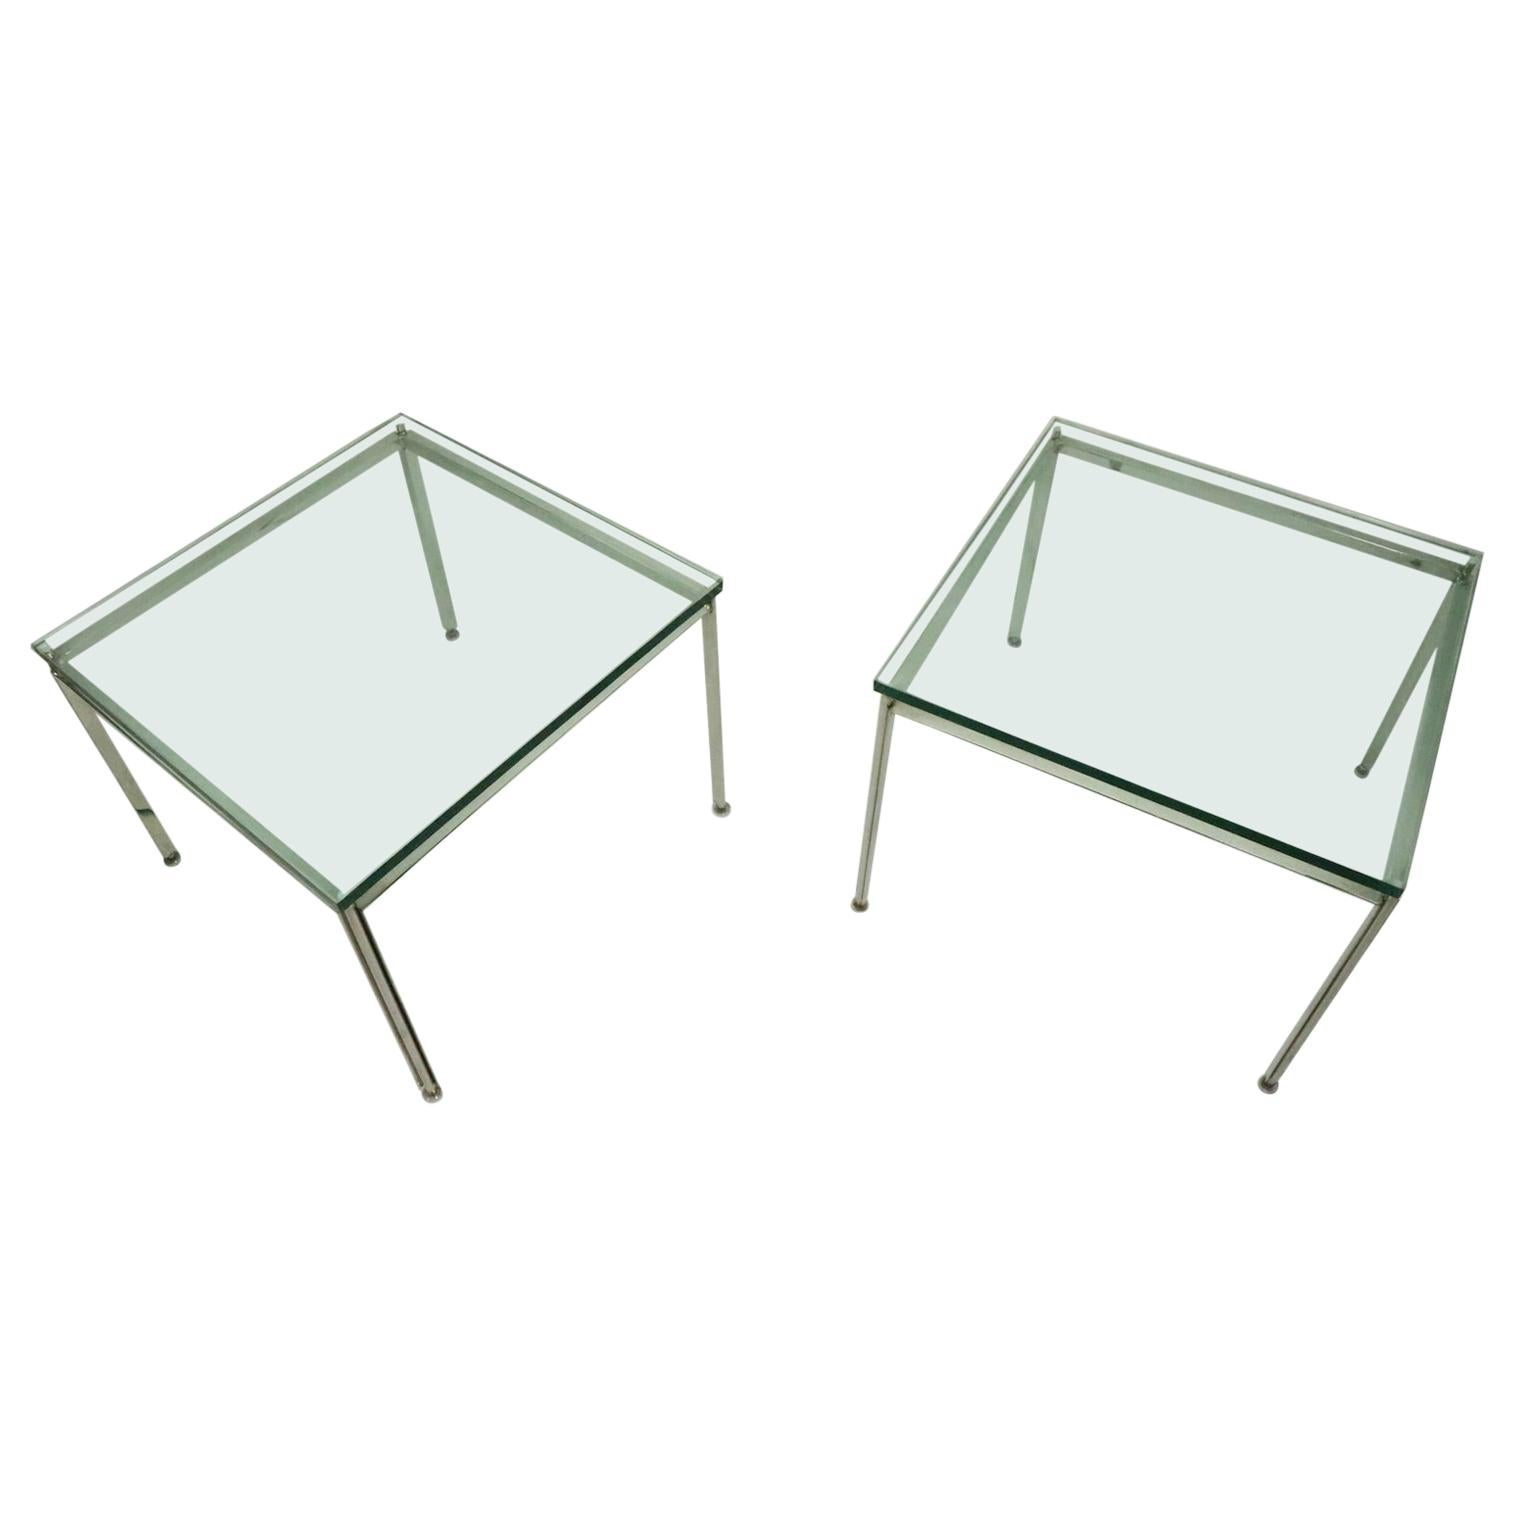 Pr. Chrome and Glass Tables by Atelier International AI